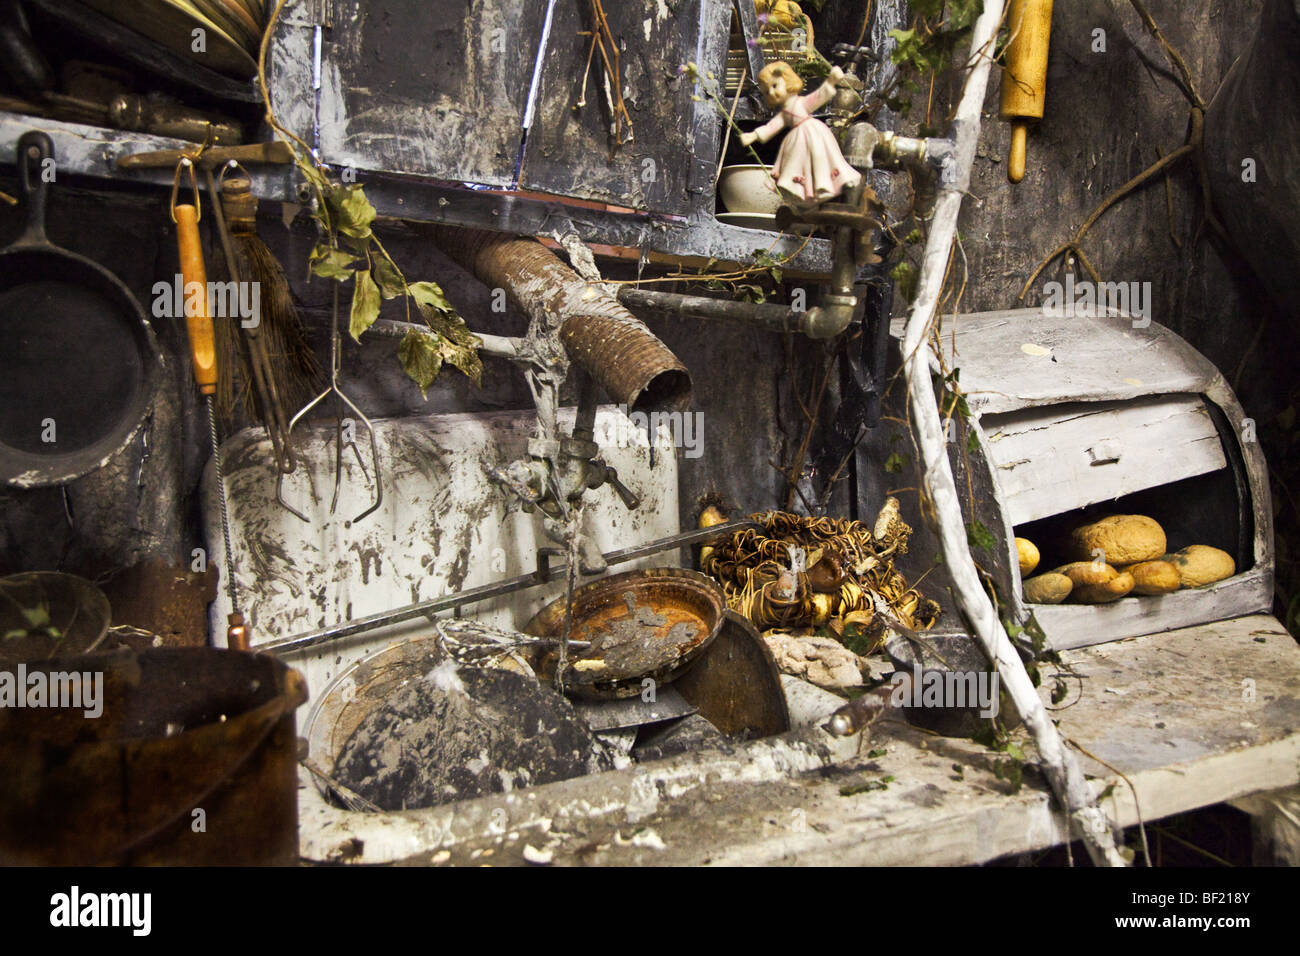 Kitchen sink with dirty and rusty dishes Stock Photo: 26475147 - Alamy